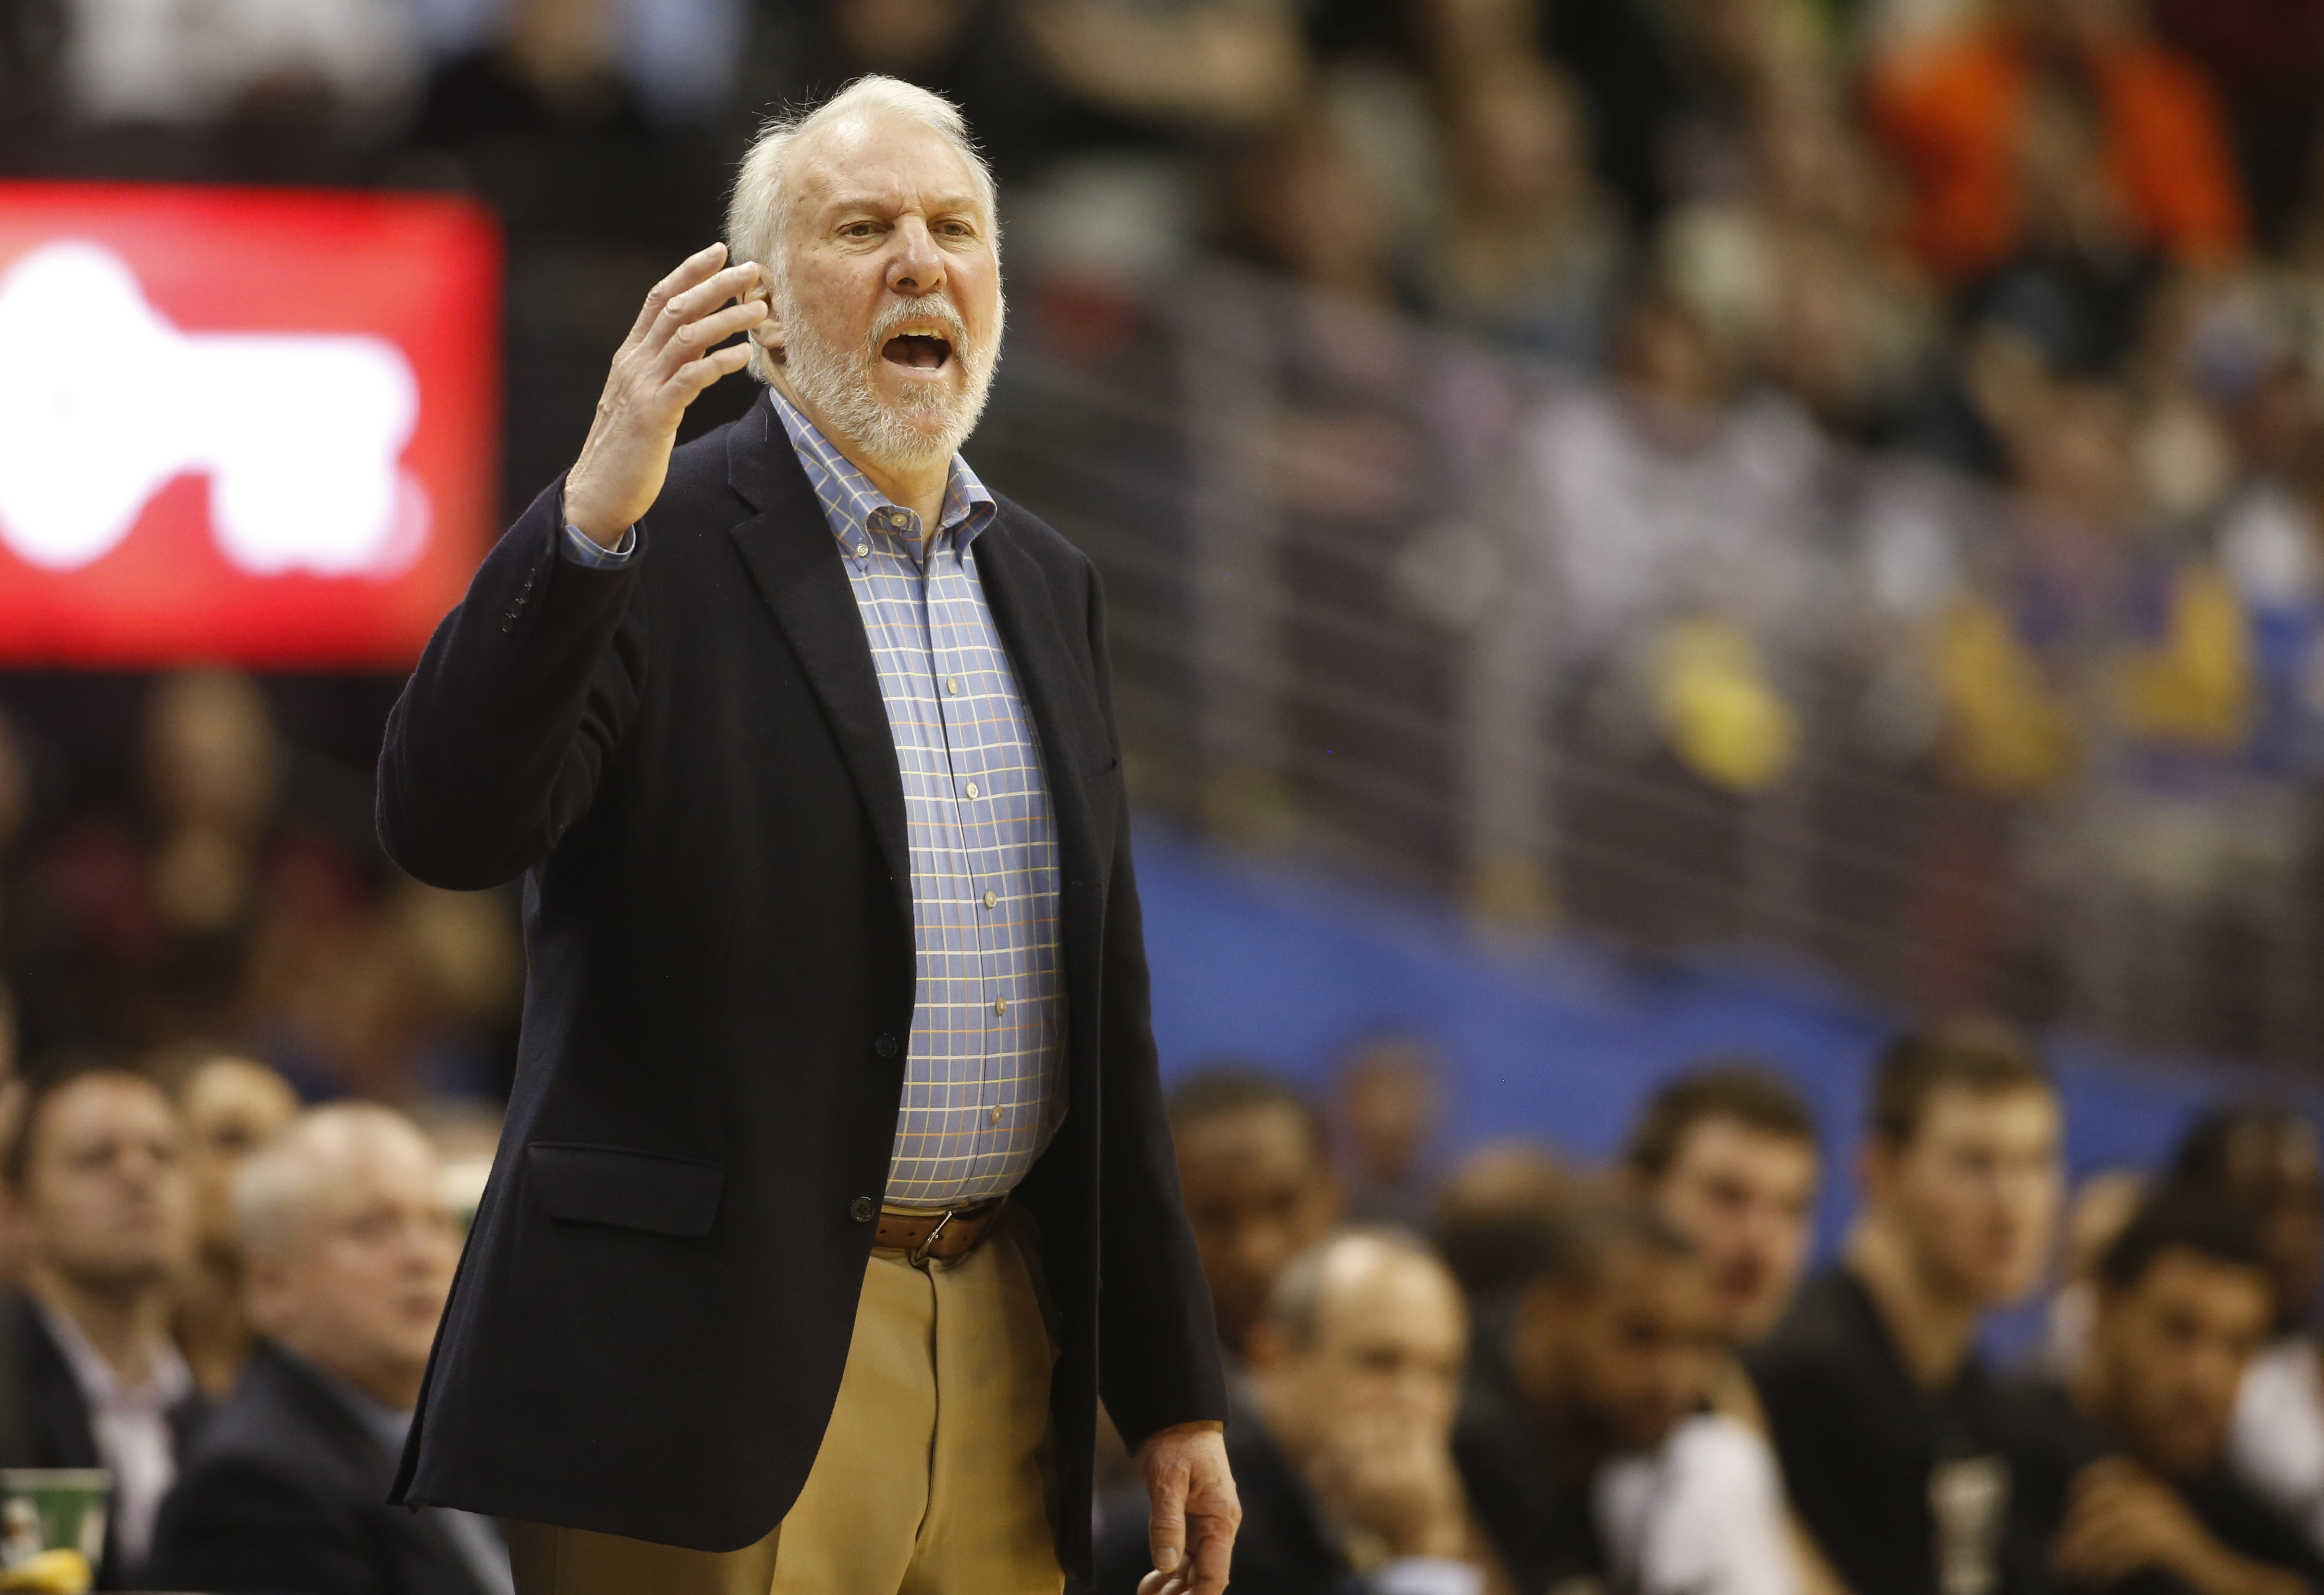 Lebron james continues to state case that gregg popovich is the best coach ever foxsports com - Gregg Popovich The Greatest Nba Coach Of All Time Cases For Phil Jackson Pat Riley Red Auerbach Others